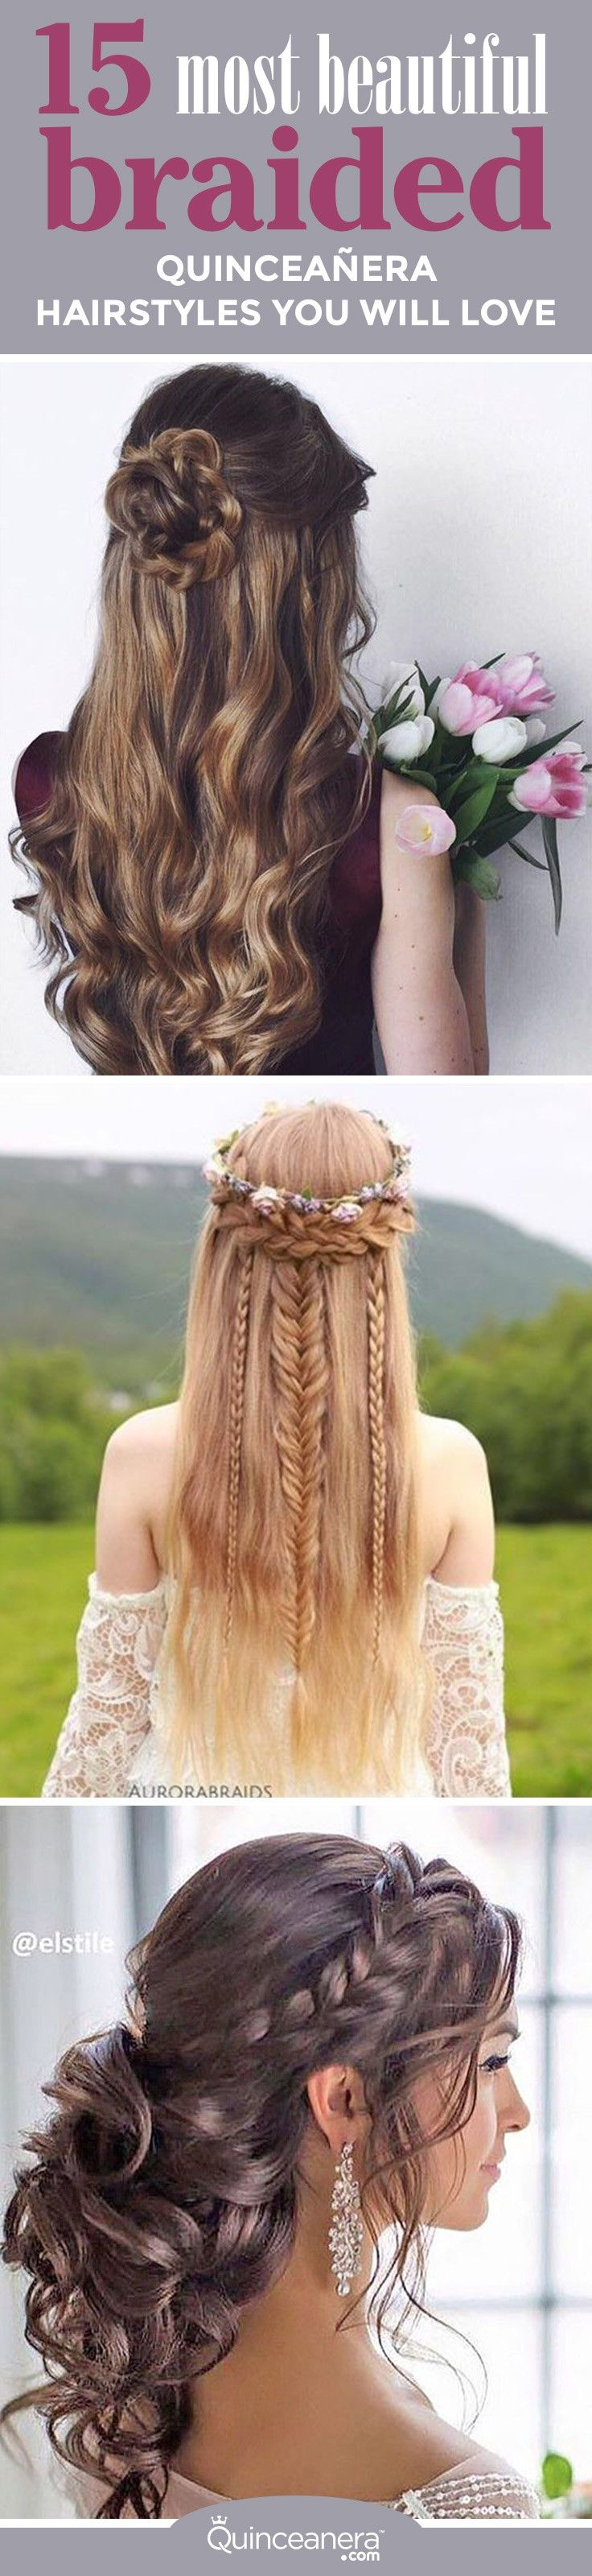 best 25+ quinceanera hairstyles ideas on pinterest   quince